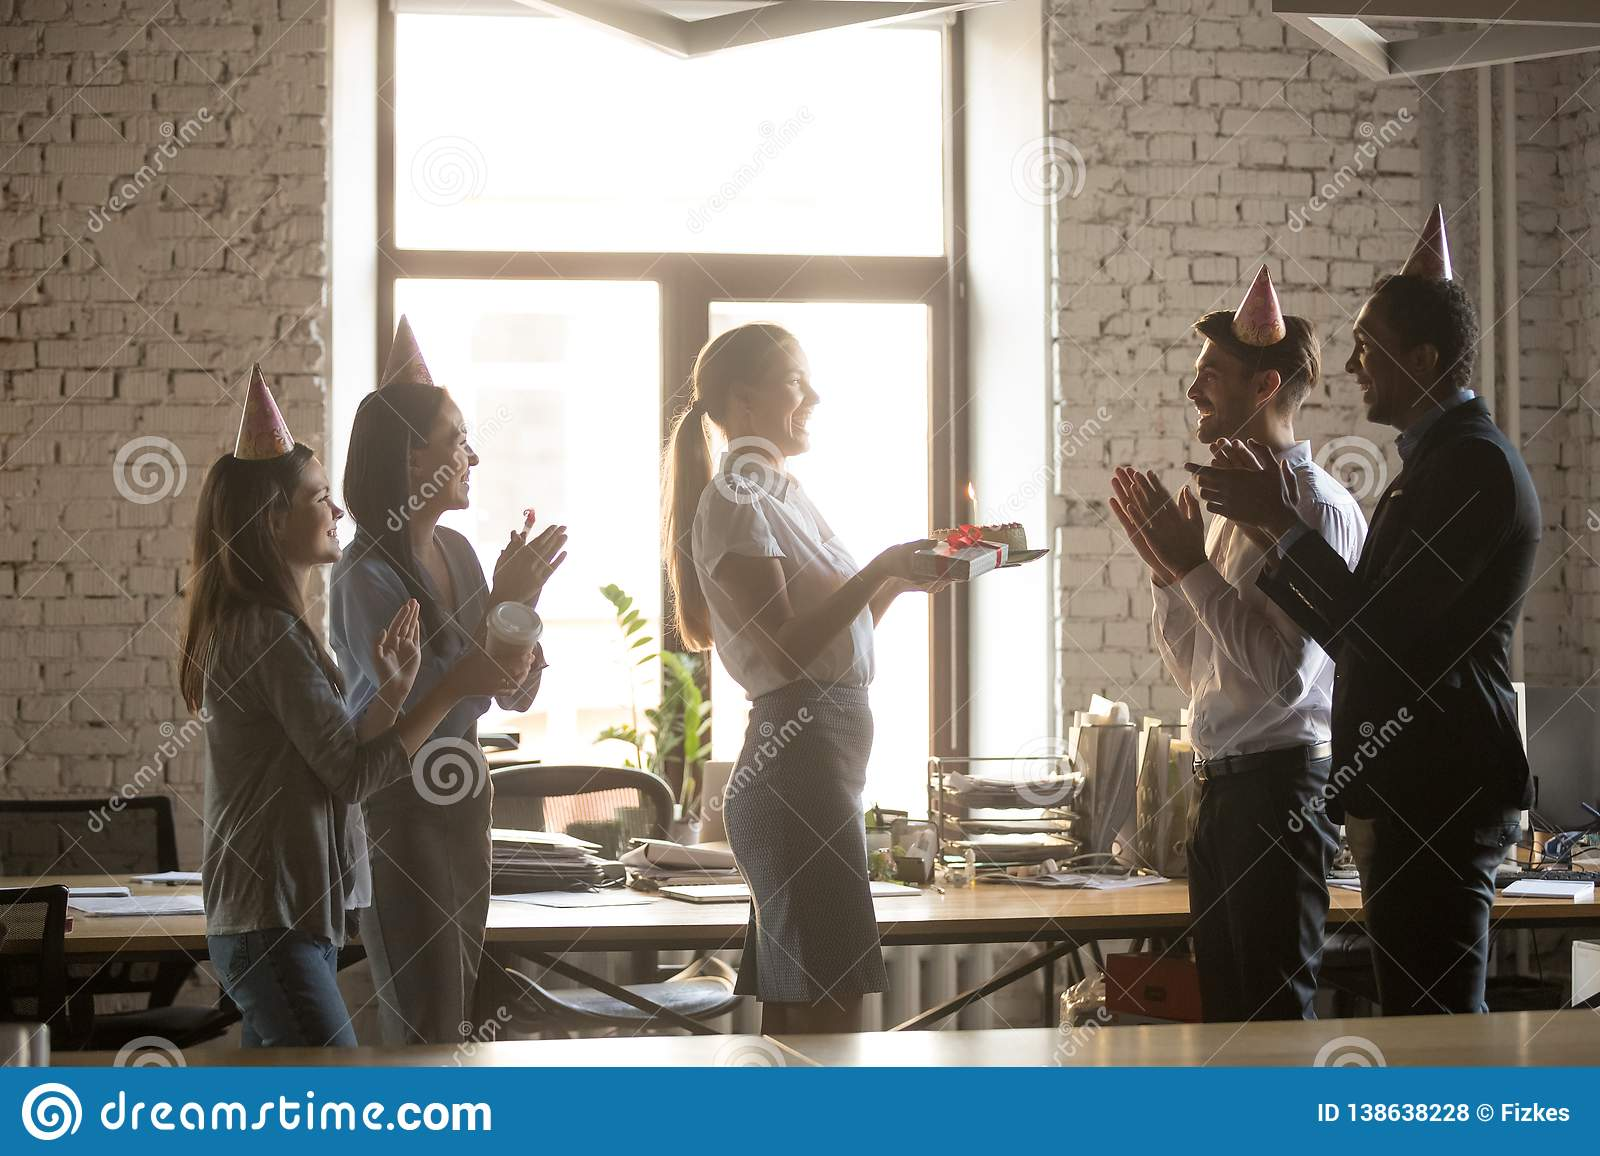 Multiracial Millennial Employees Wear Party Hats Congratulate Colleague With Birthday Present Cake And Gift Excited Diverse Workers Laugh Have Fun